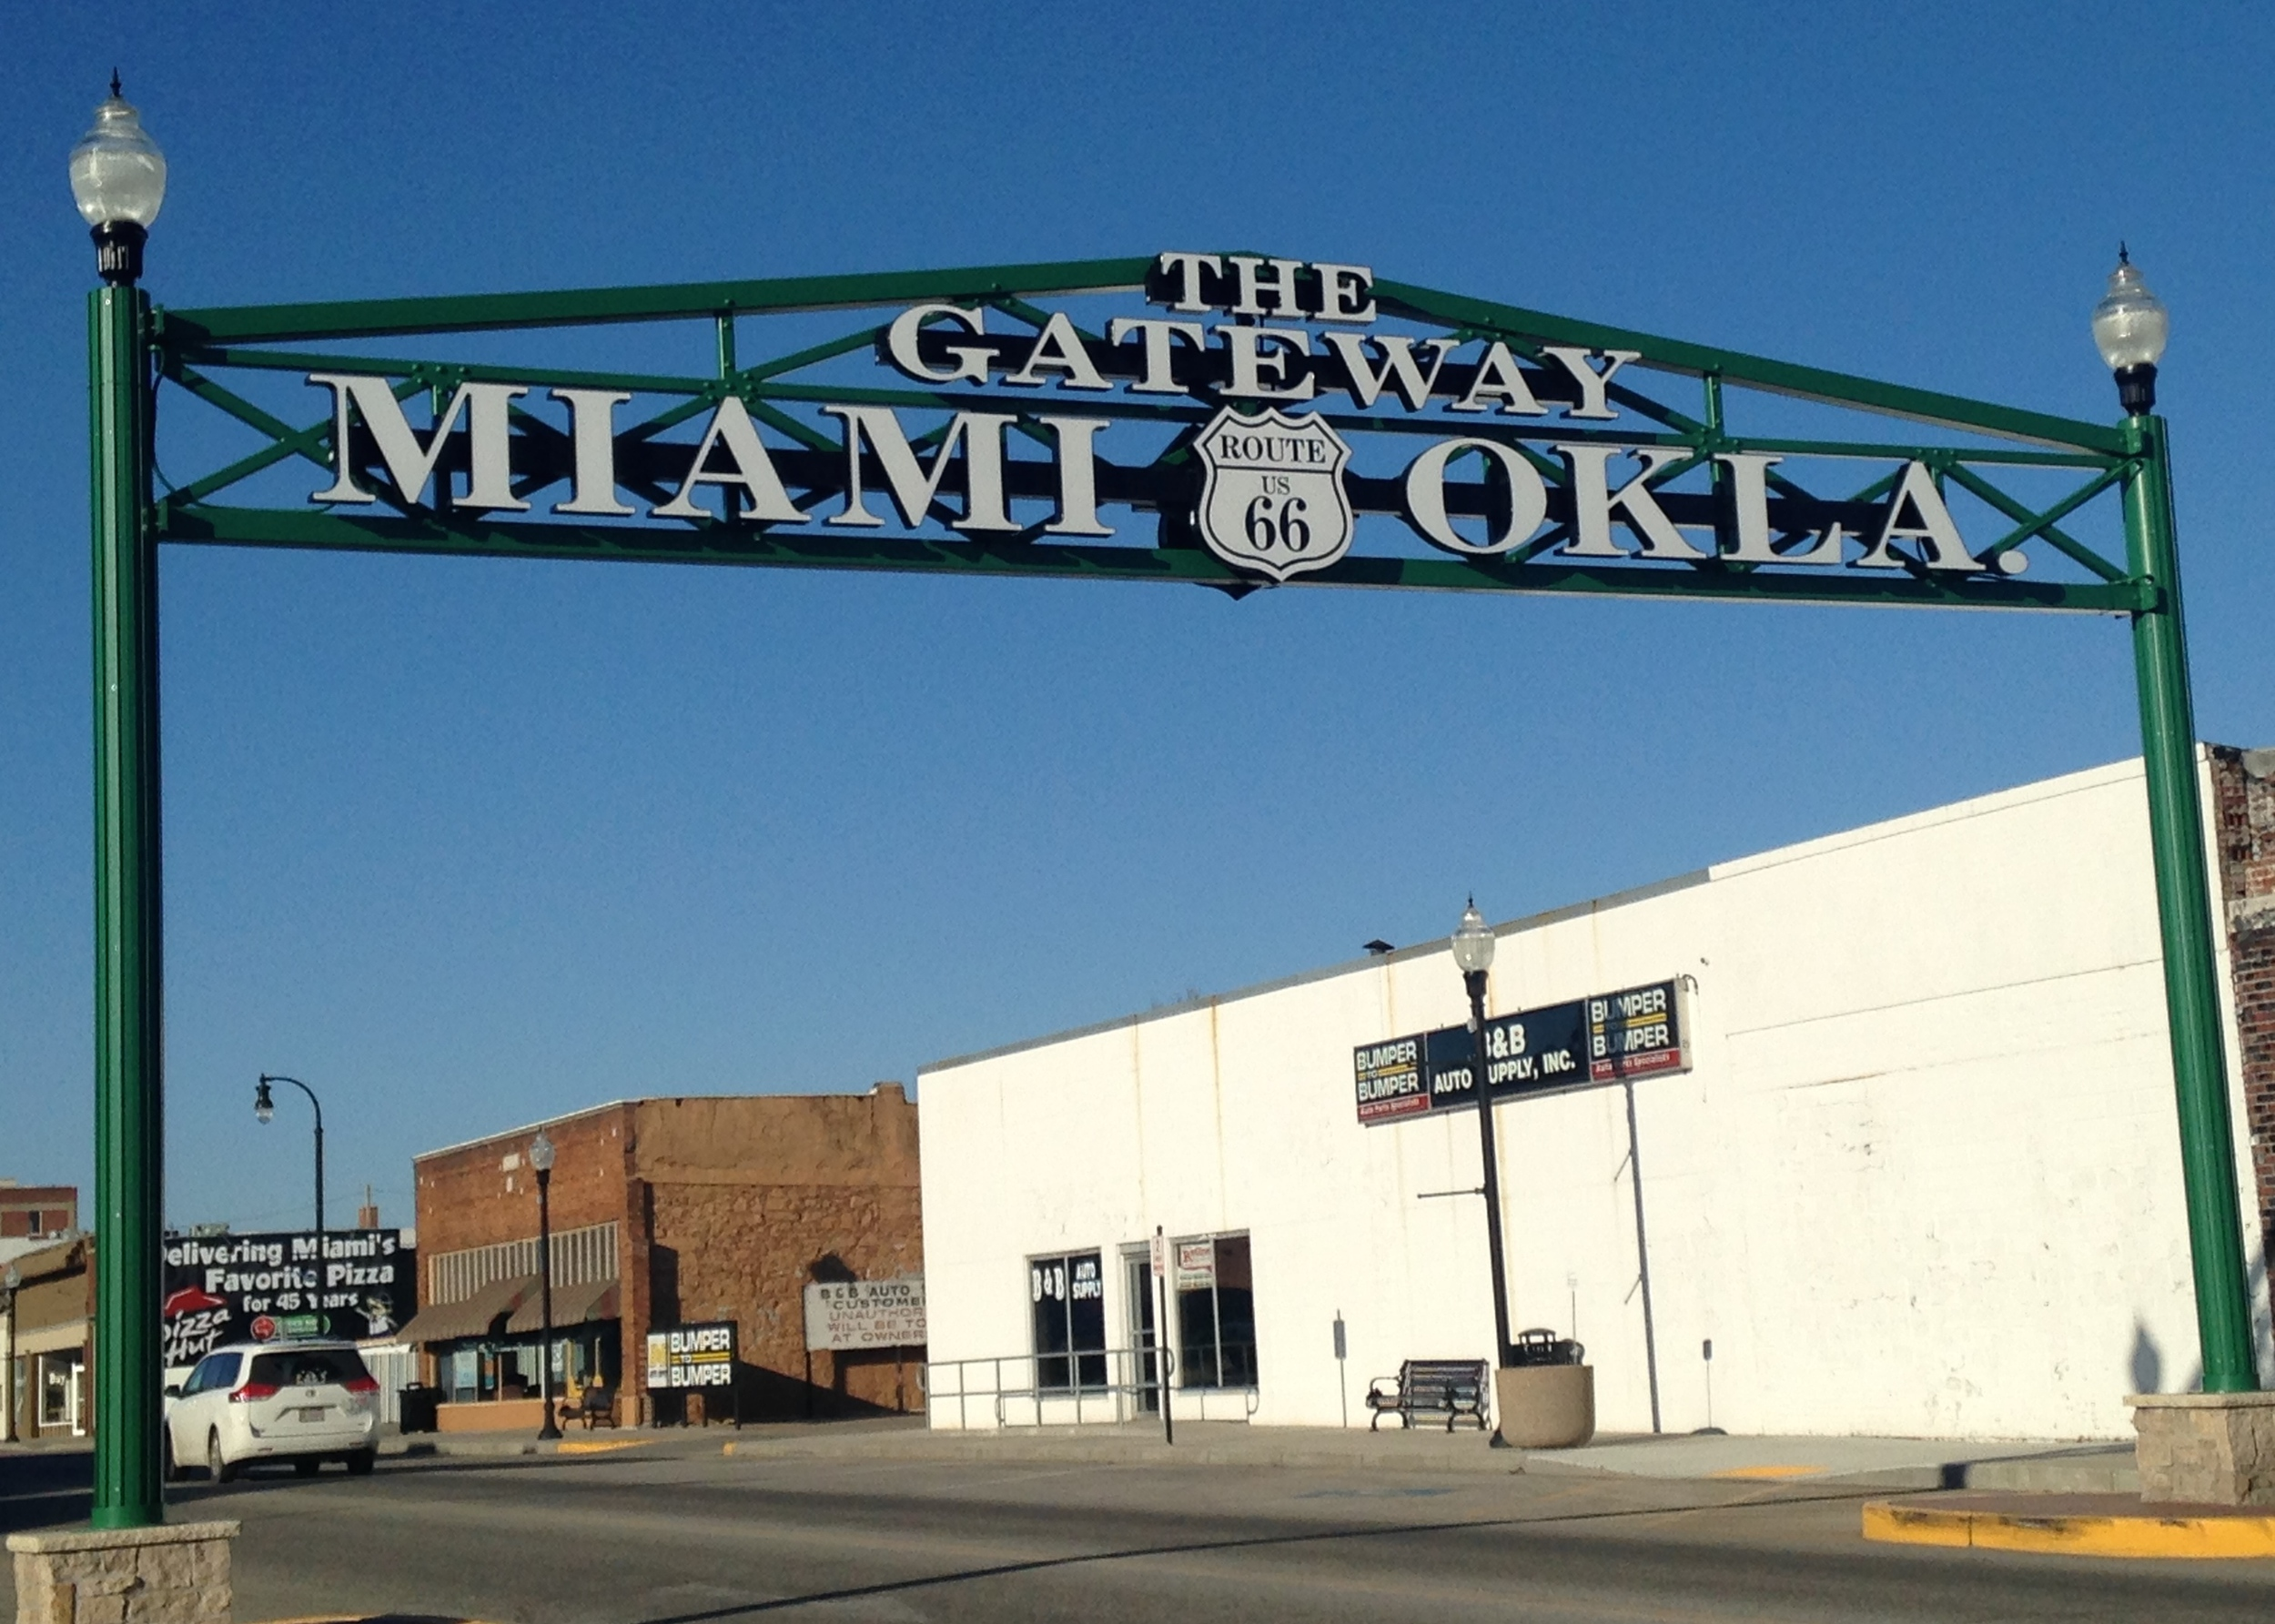 Gateway Sign: In the 1930s, after Route 66 made its way through Miami, Oklahoma, a sign spanning the roadway welcoming visitors to downtown was removed. Today, a replica sign spans Central and C Street, welcoming Route 66 travelers to Miami. nine federally-recognized tribes have their tribal headquarters in the Miami area.